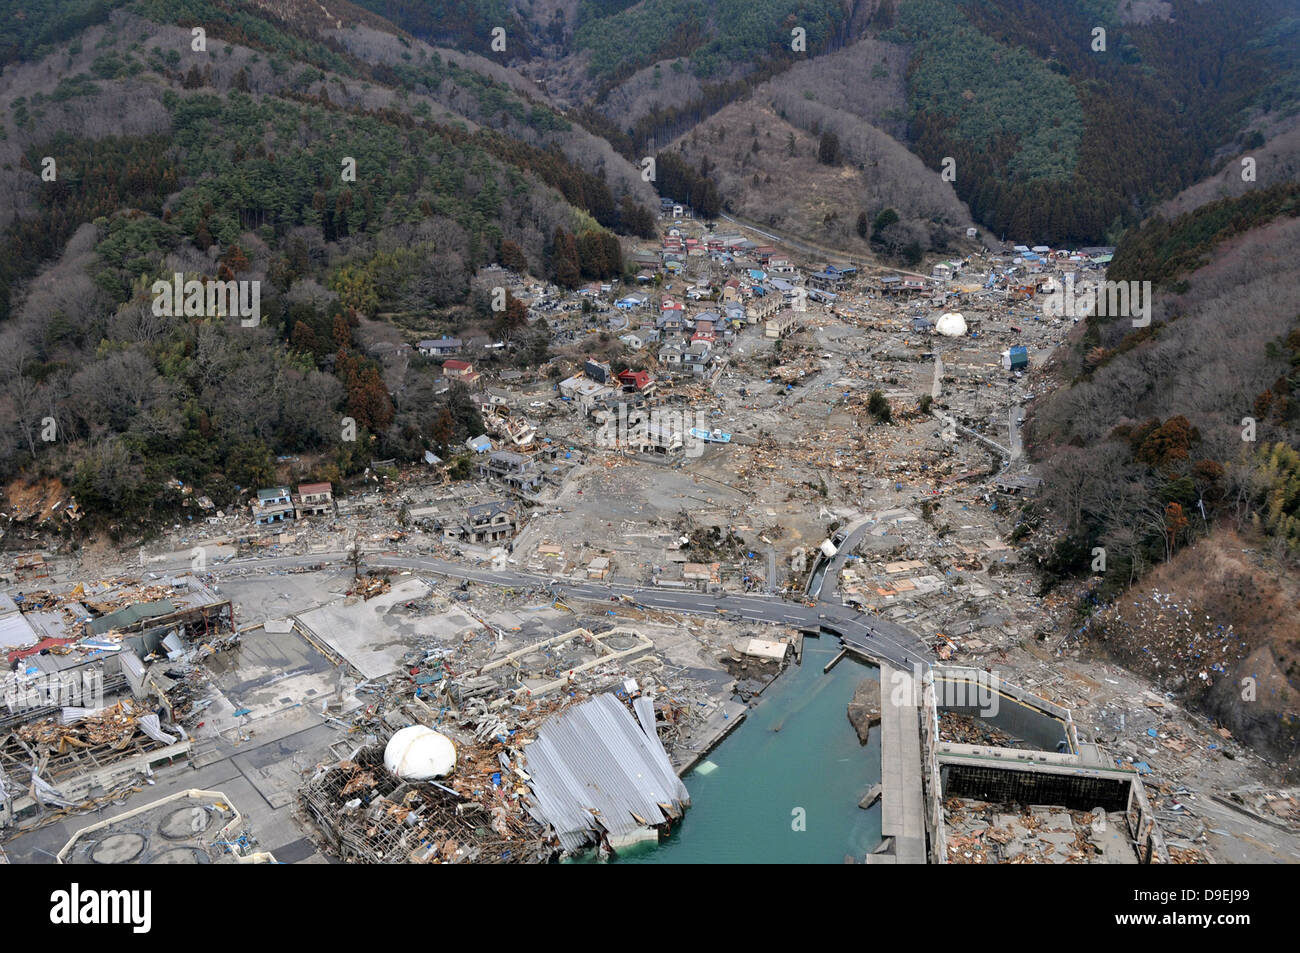 A helicopter team surveys the tsunami and earthquake damage over Japan. - Stock Image